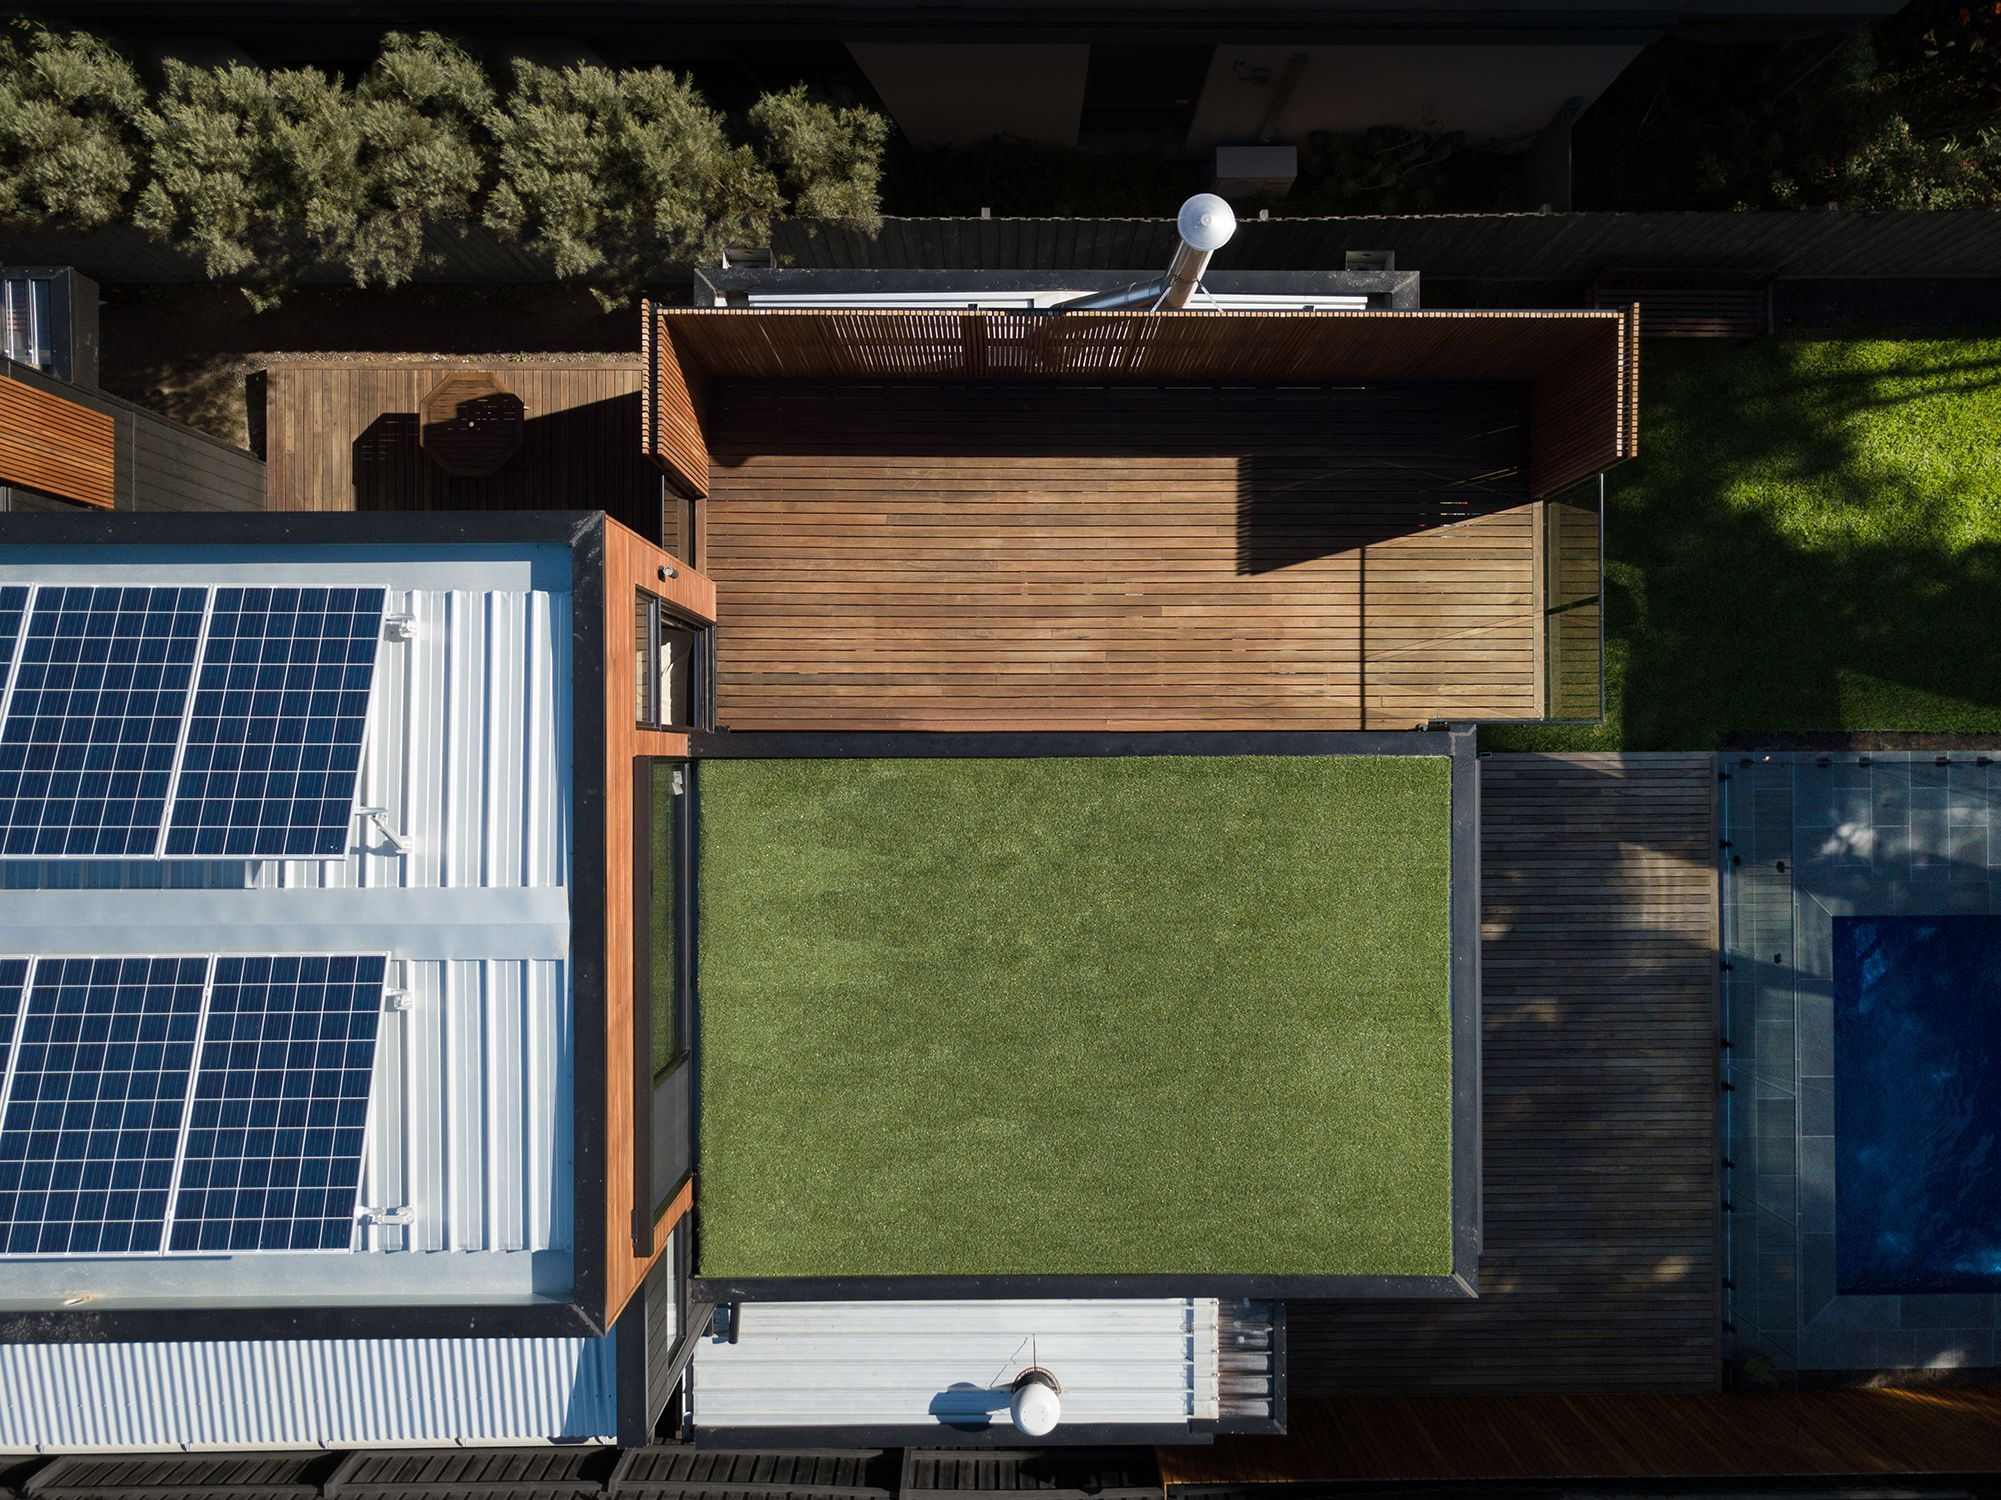 http://www.bencallery.com.au/wp-content/uploads/2018/02/04_Roof-aerial-no-people.jpg